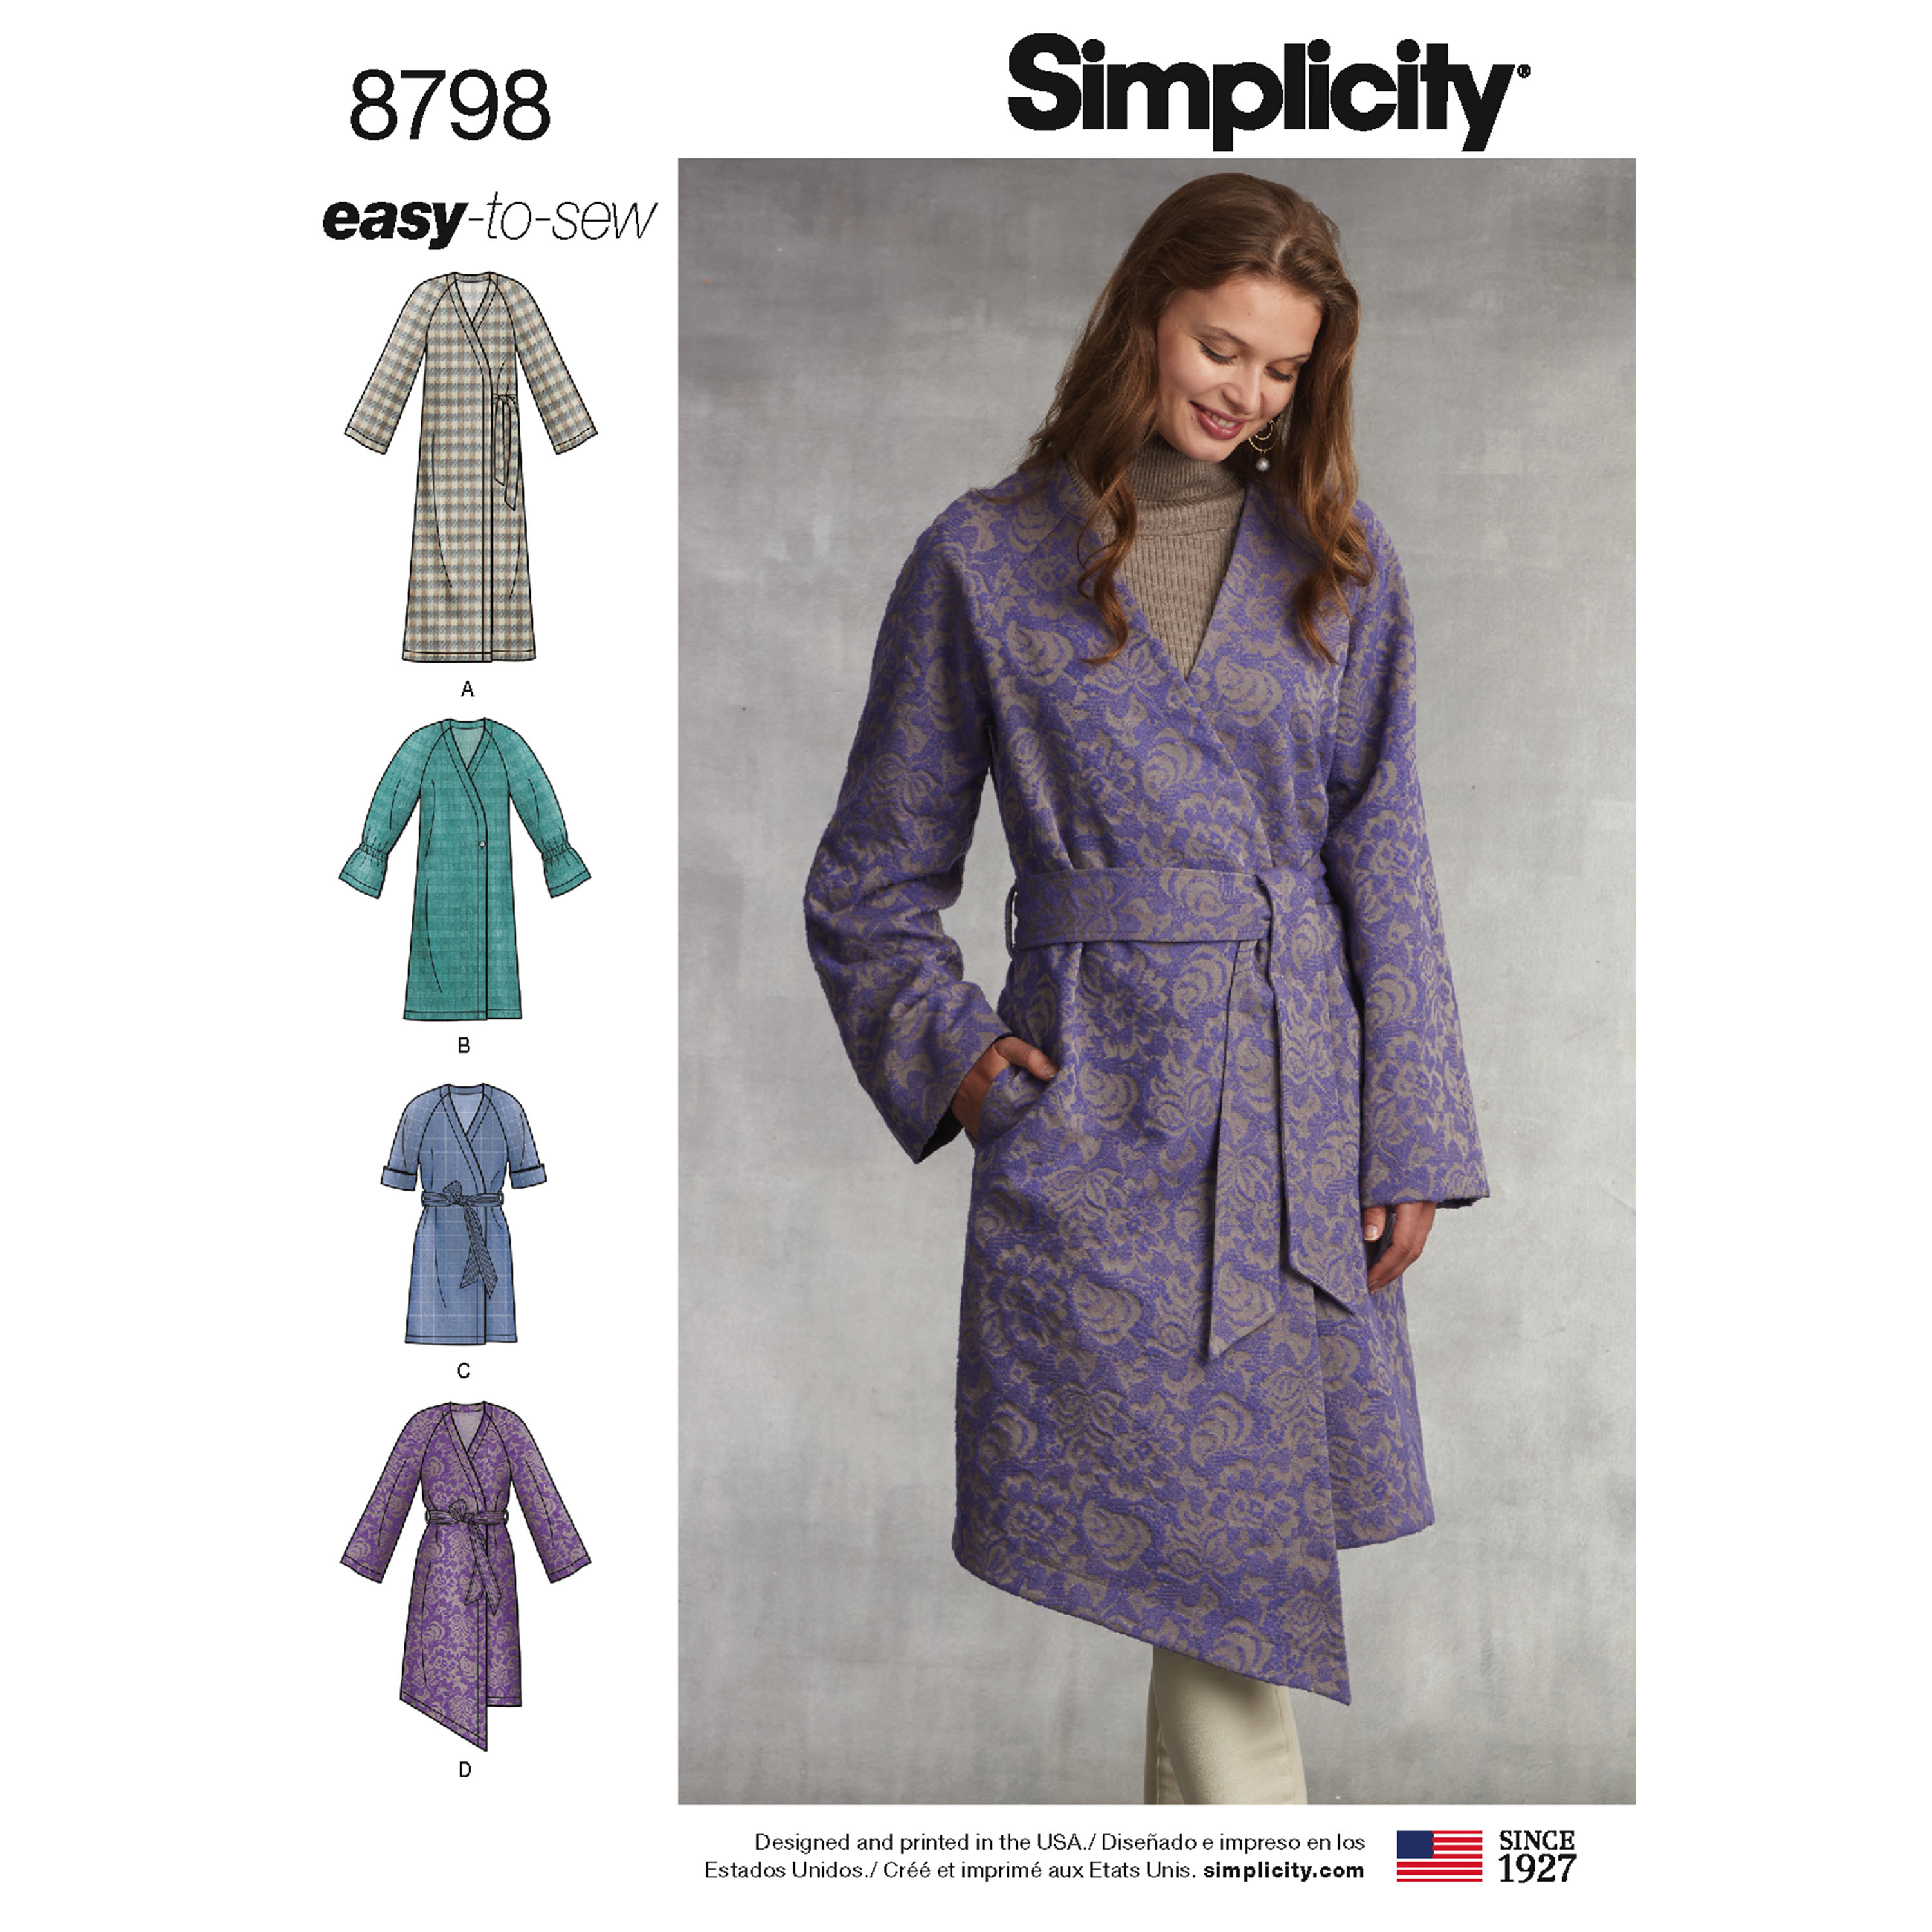 631f16bc0 Simplicity 8798 Misses' Unlined Coat with Tie Belt